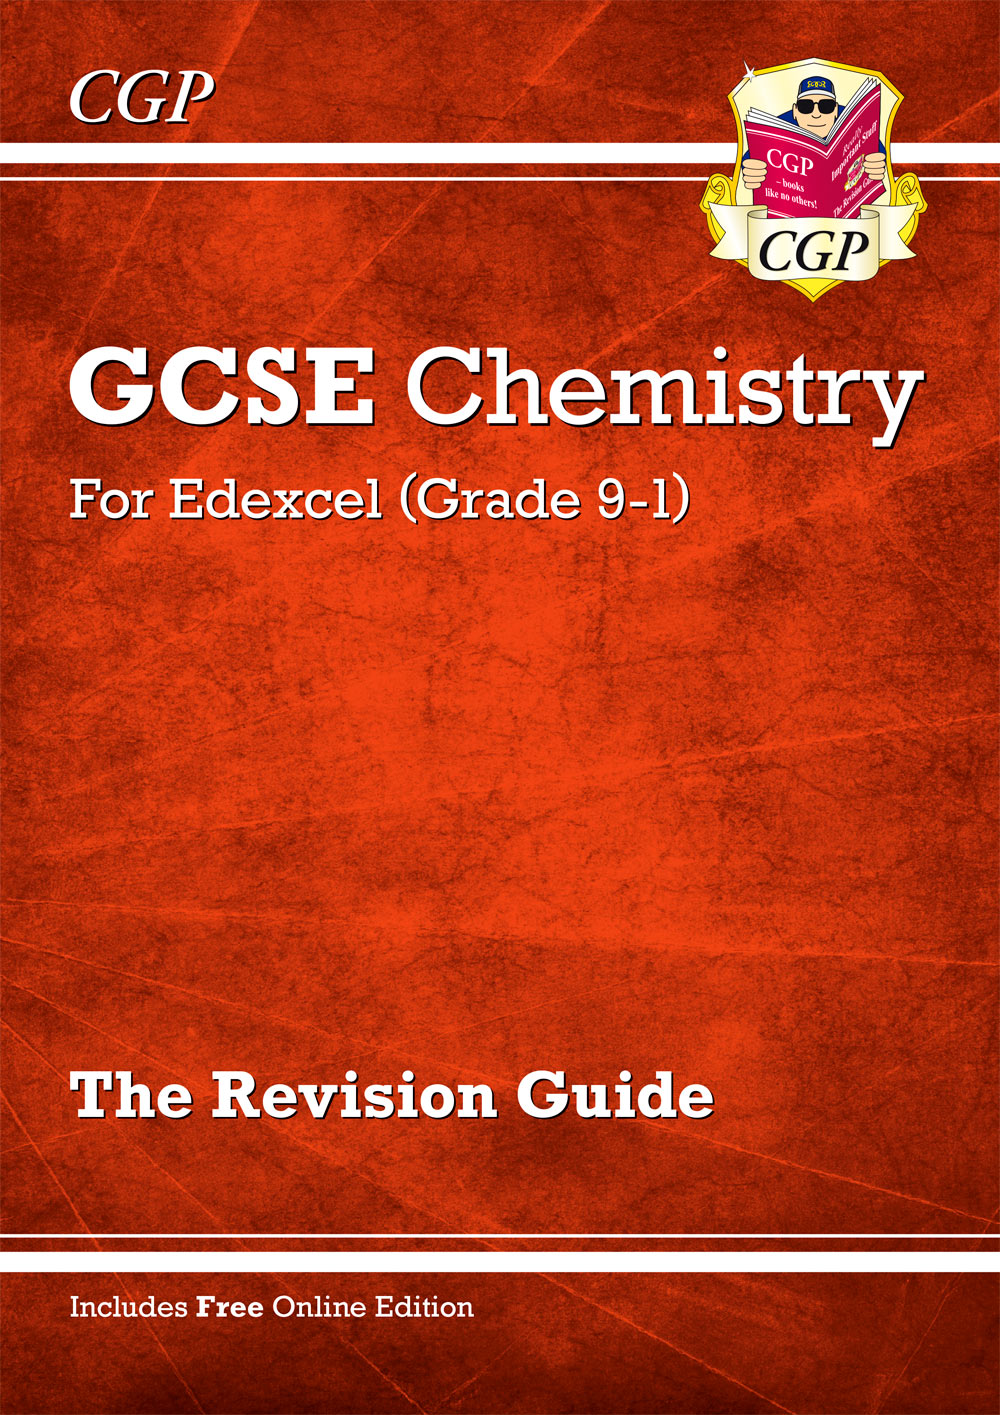 CER45 - New Grade 9-1 GCSE Chemistry: Edexcel Revision Guide with Online Edition